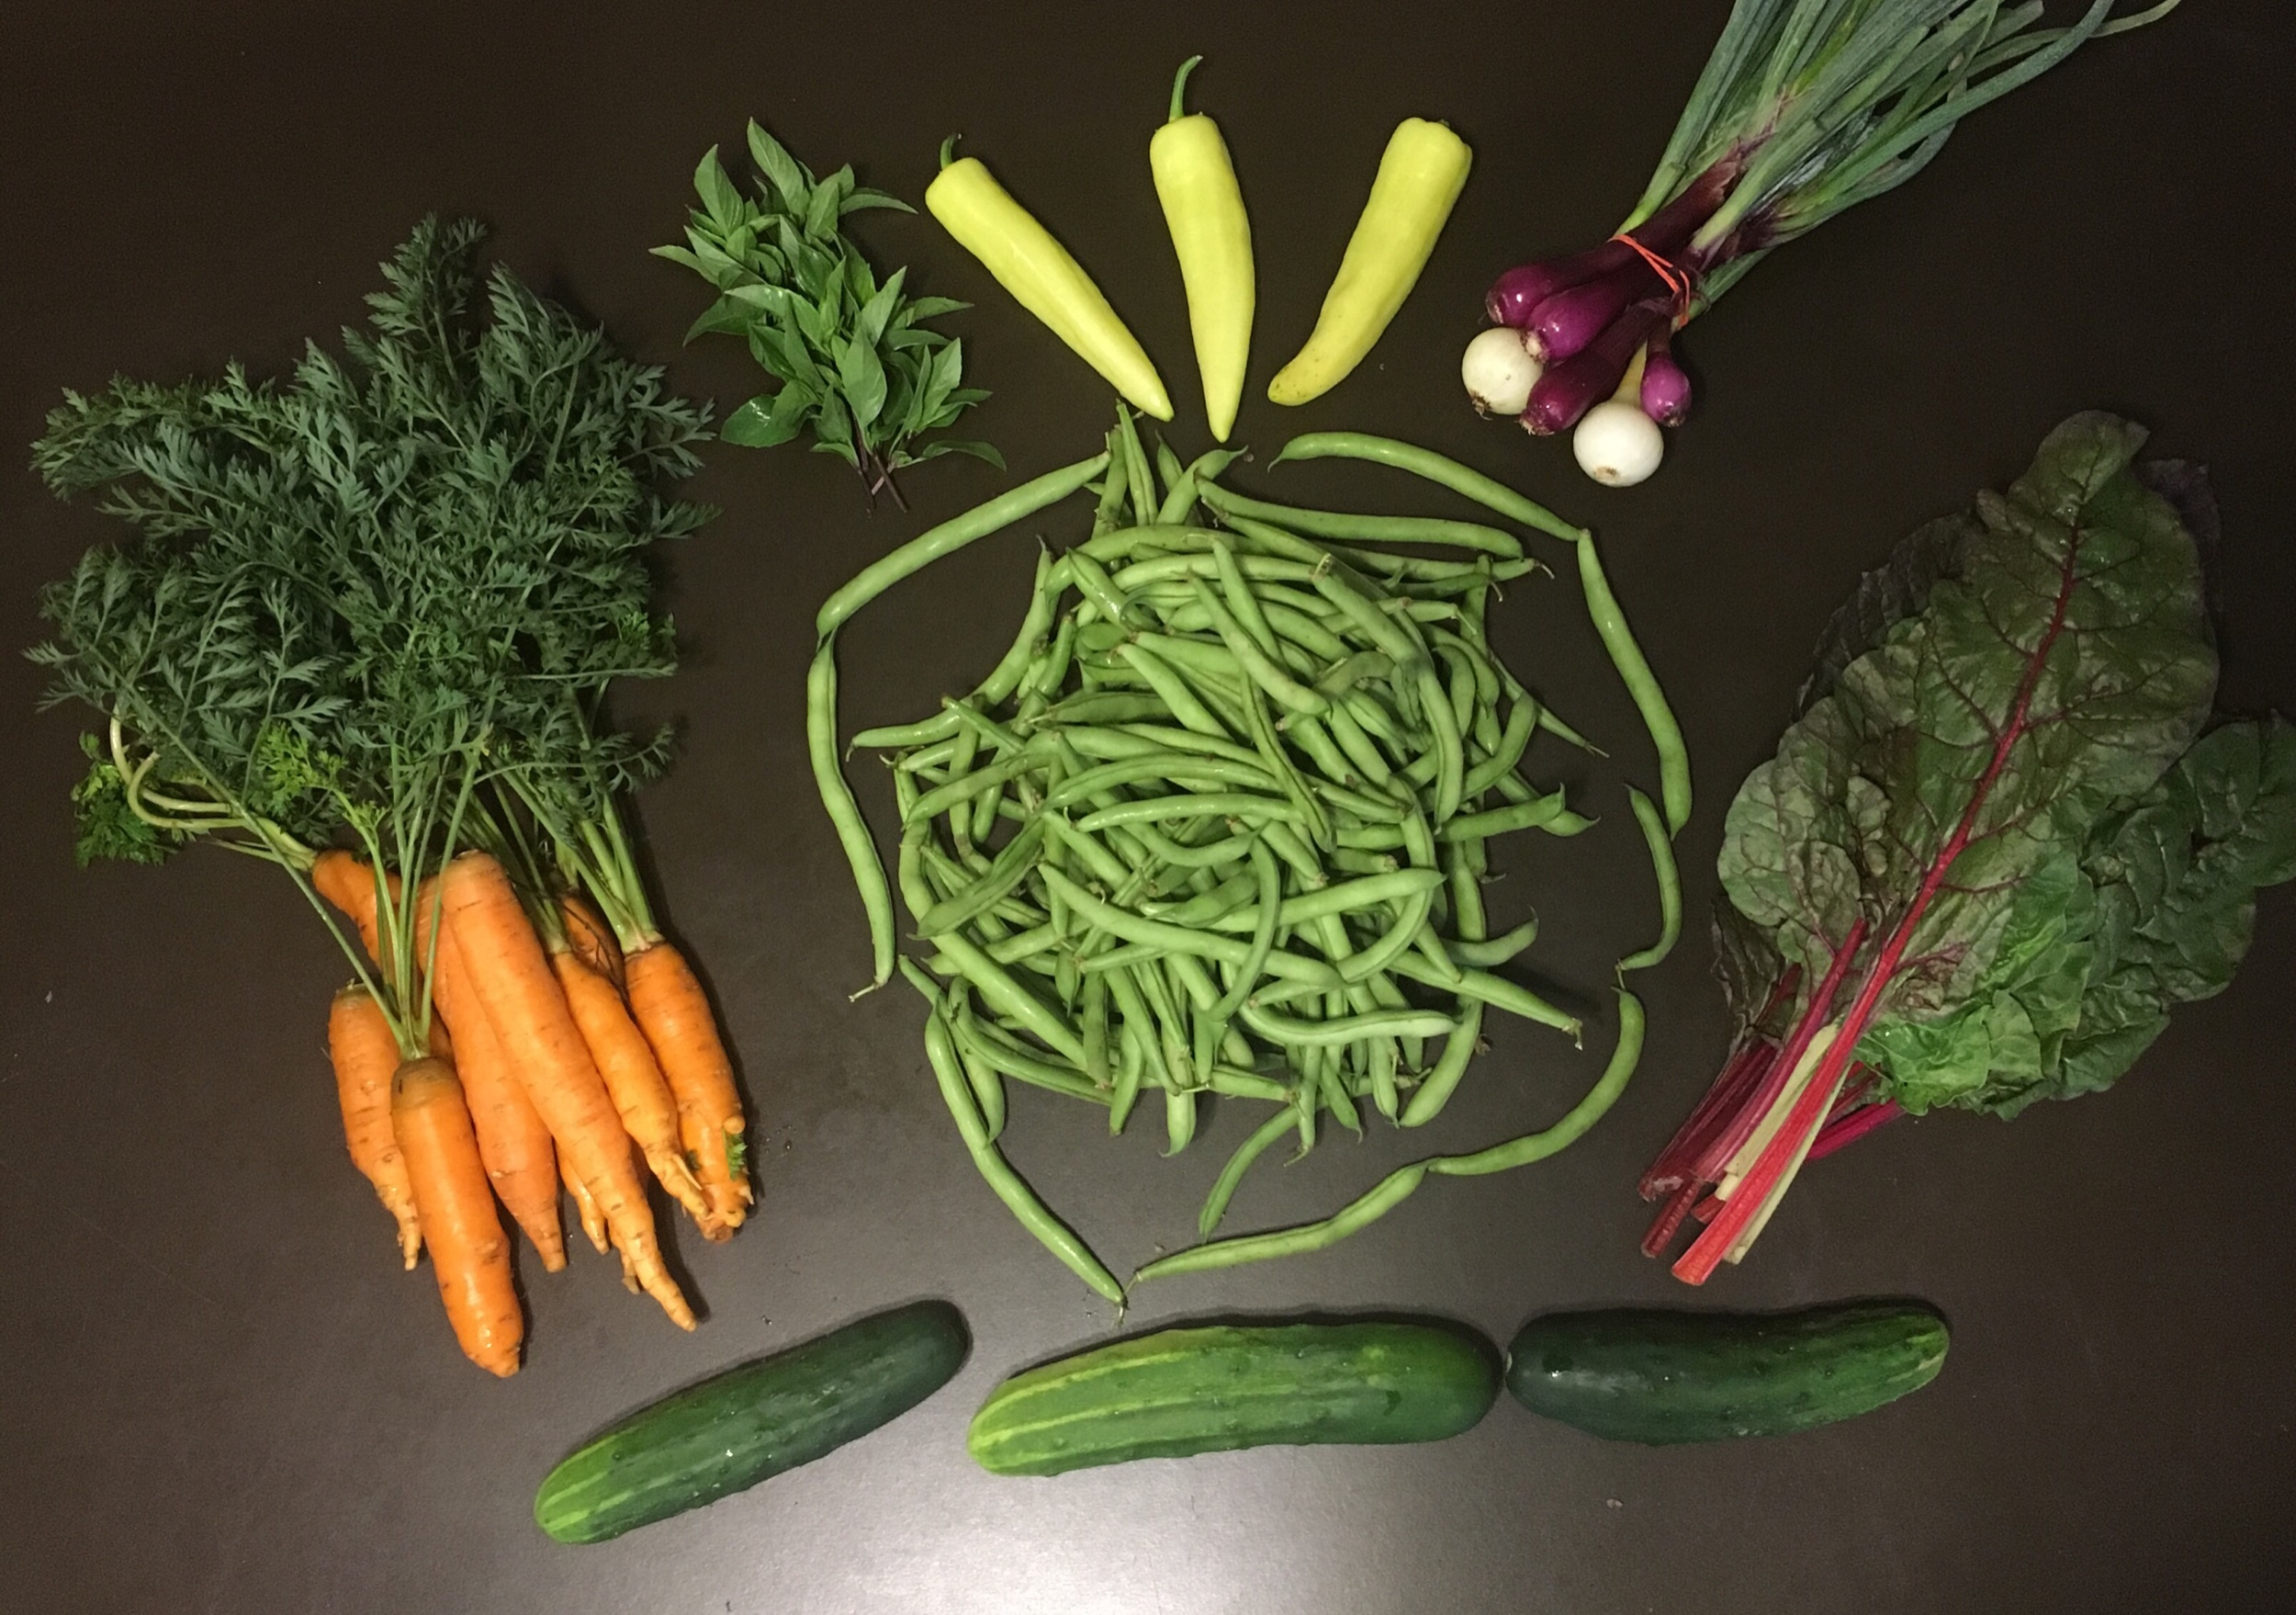 Carrots, slicing cucumbers, green beans, thai basil, banana peppers, sPring onions, swiss chard